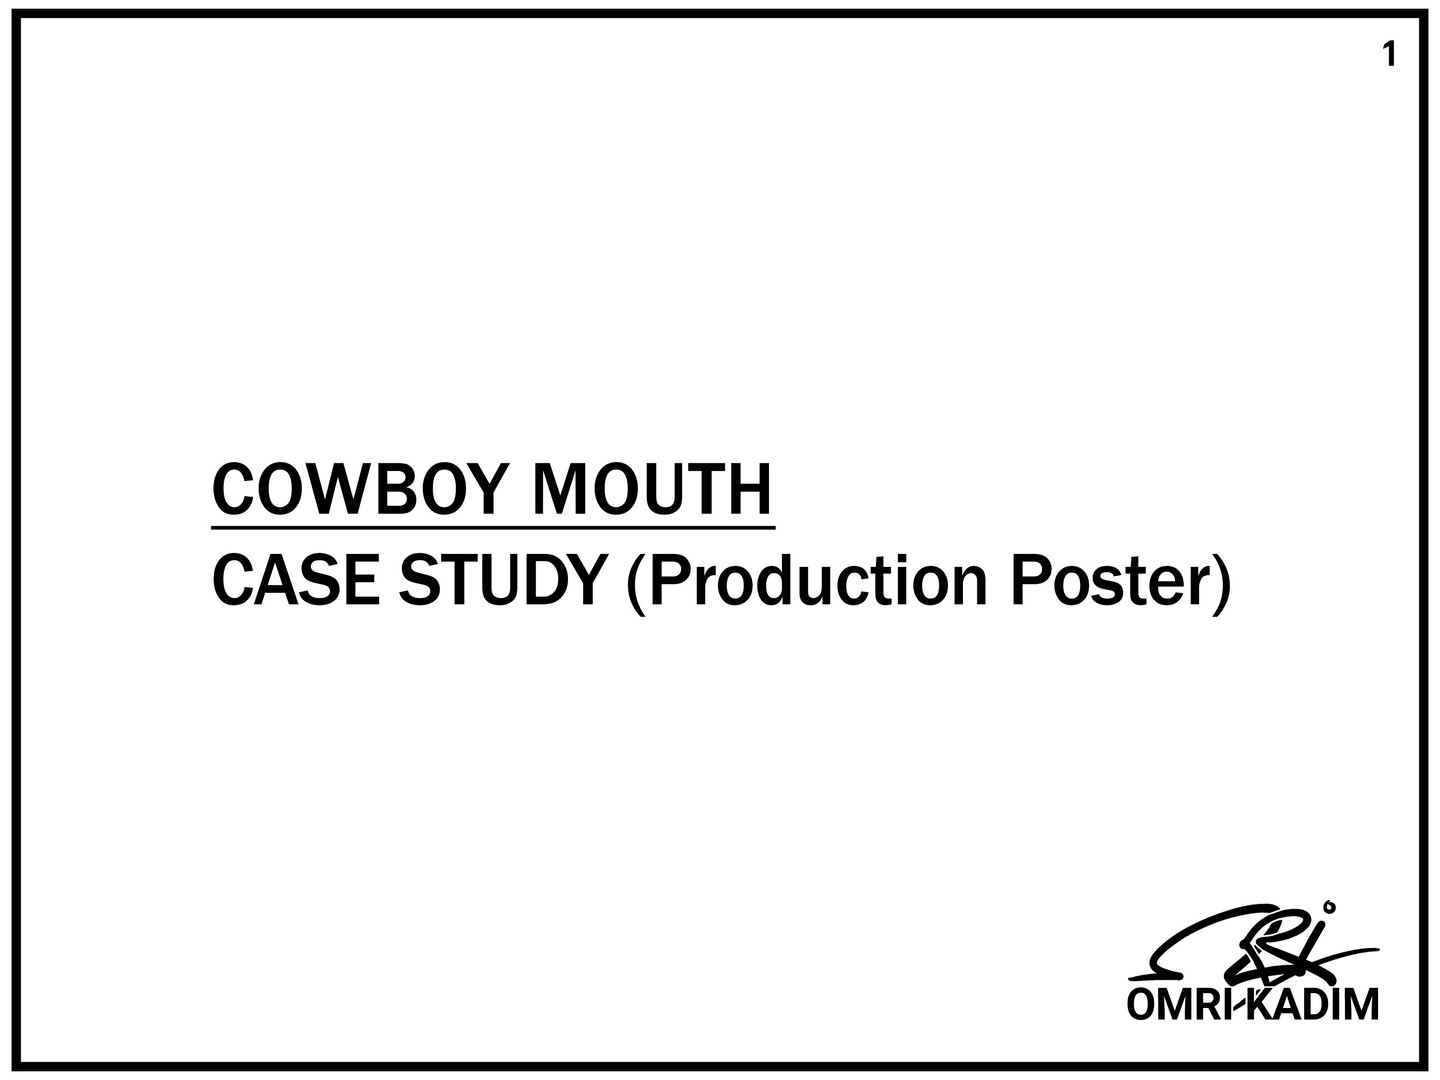 Cowboy Mouth Case Study_1.jpg